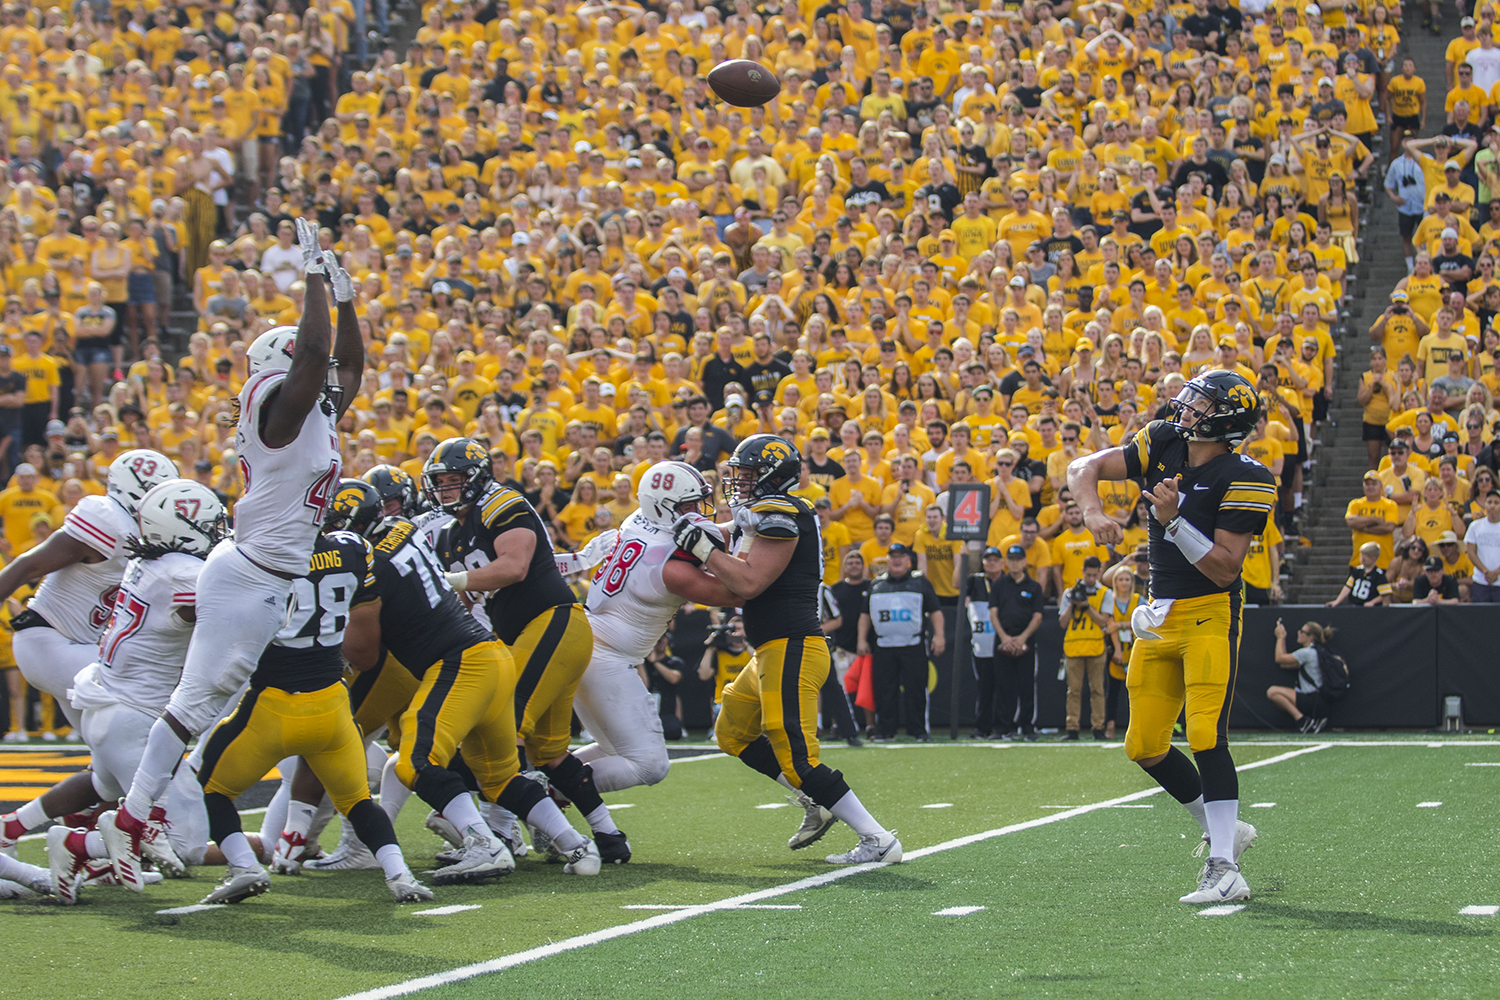 Iowa quarterback Nate Stanley throws a touchdown pass during the Iowa/NIU football game at Kinnick Stadium on Saturday, Sept. 1, 2018. The Hawkeyes defeated the Huskies, 33-7.